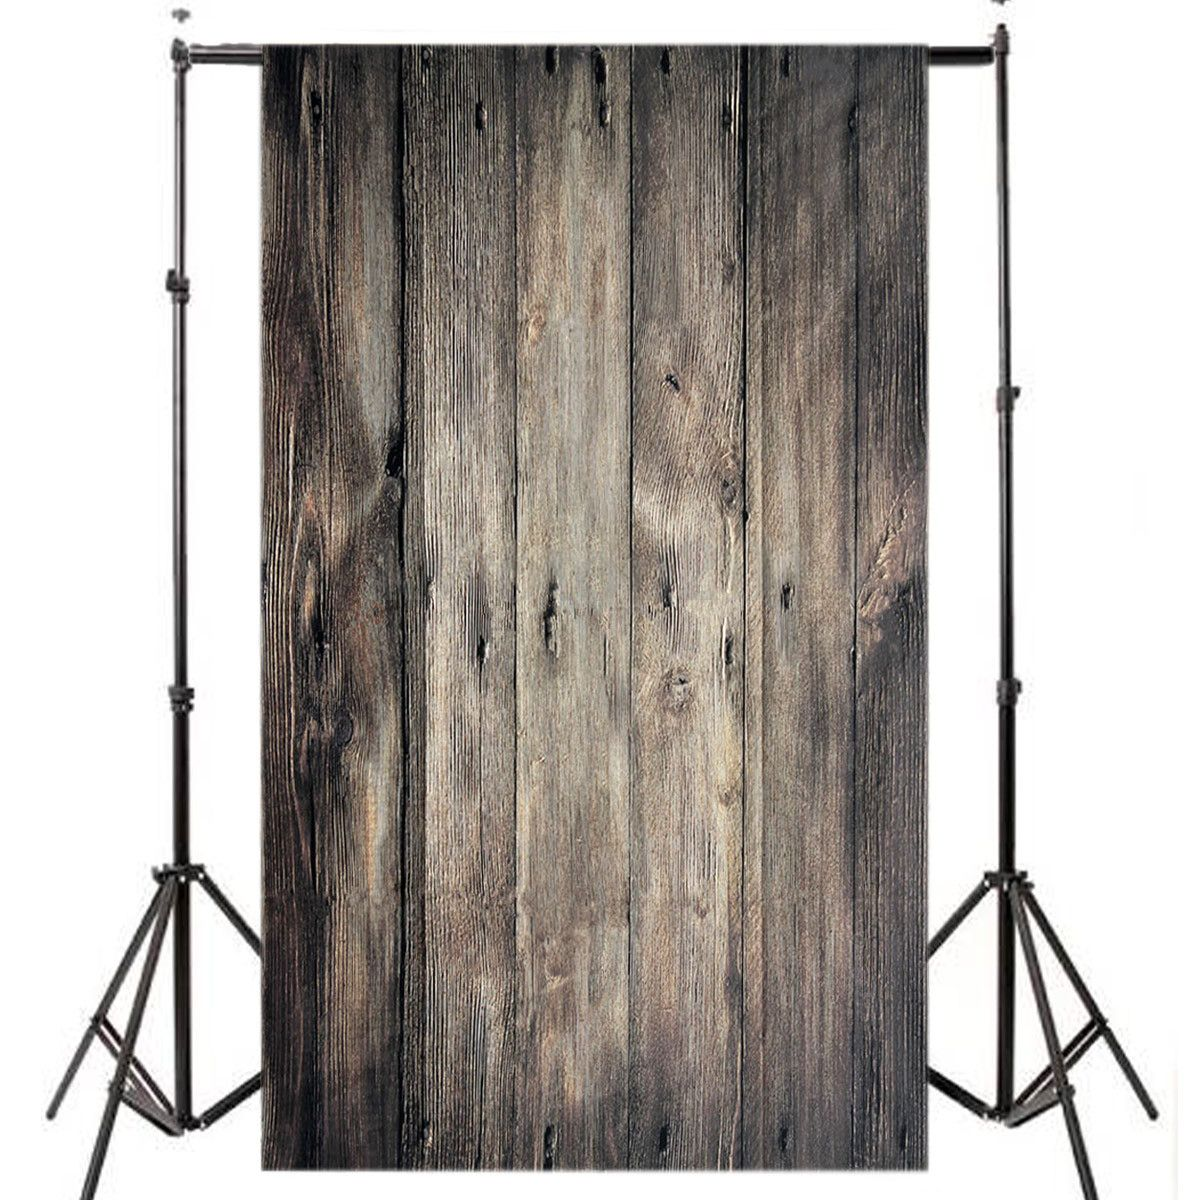 3x5FT Vintage Wooden Plank Wall Floor Costume Wedding Custom Studio Backdrops Photo Background Vinyl New 3x5ft colorful photography backdrops photo wooden wall floor background studio props